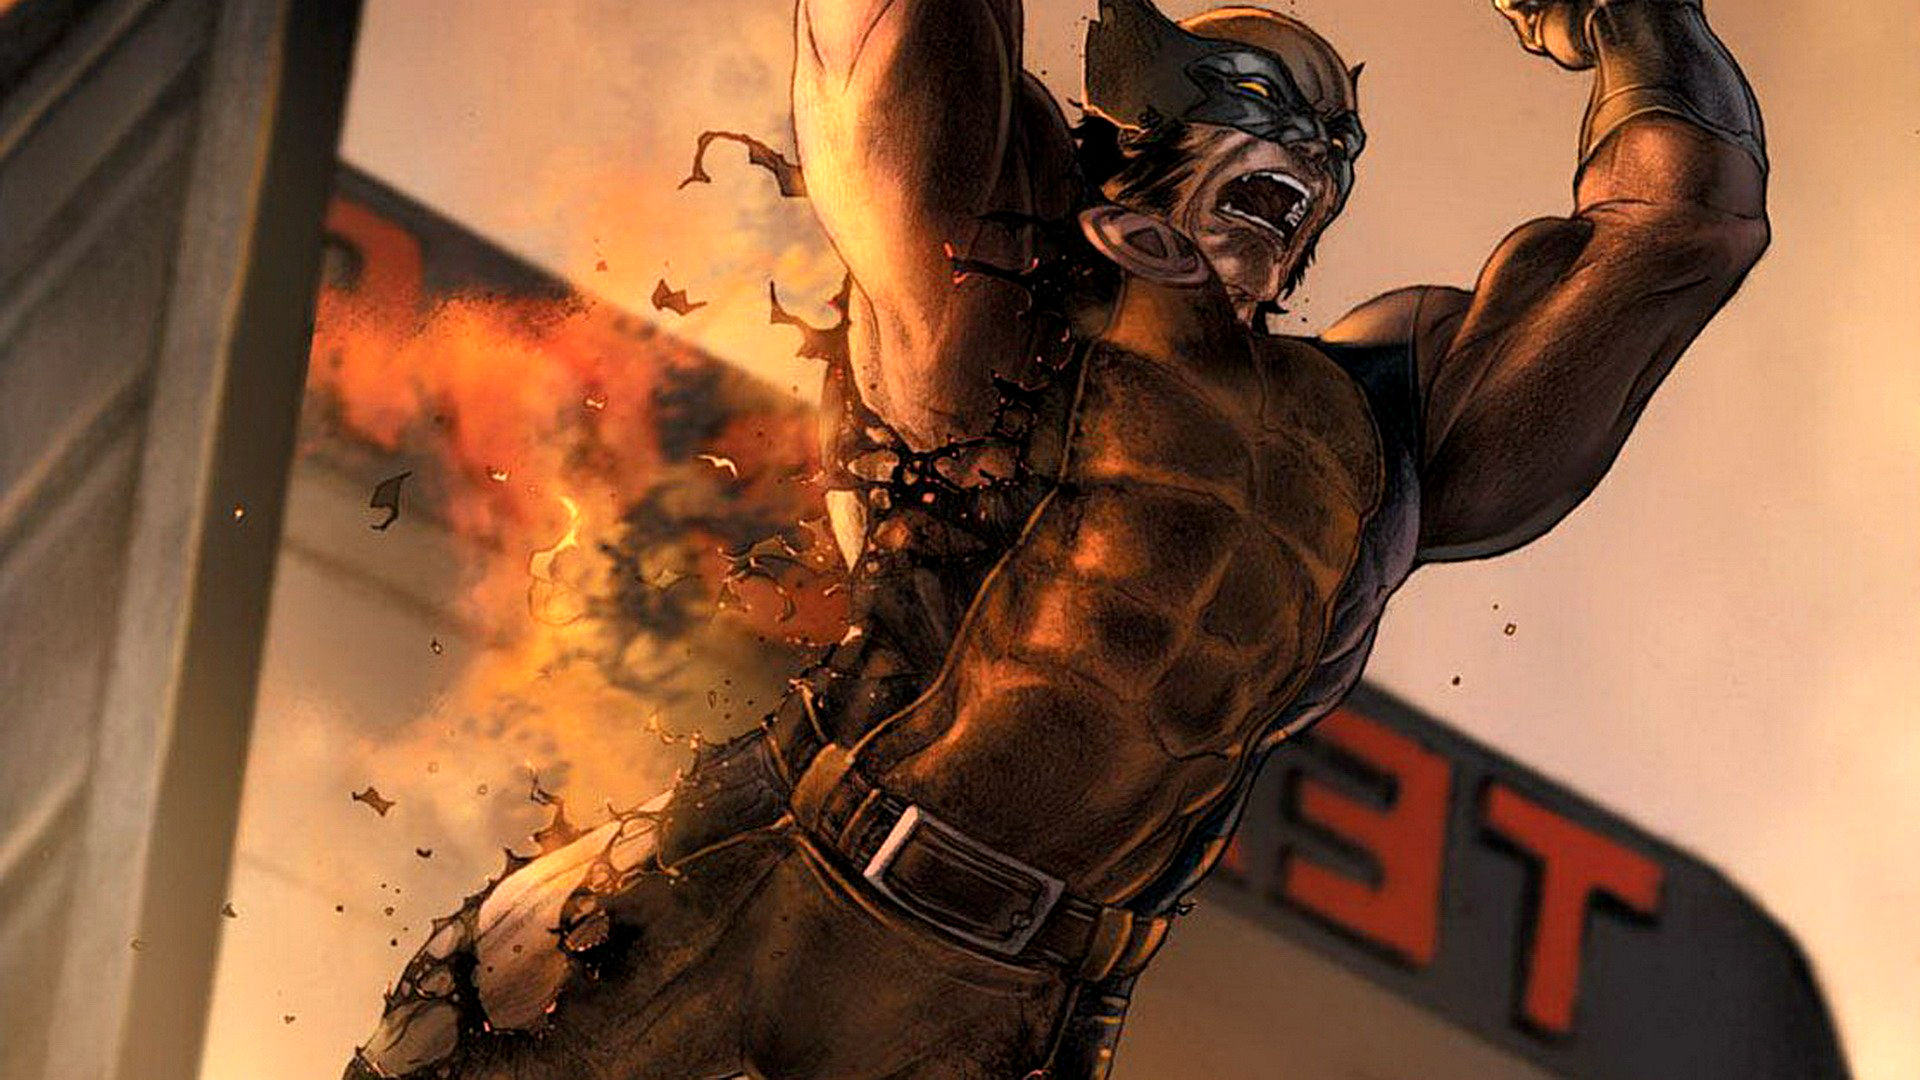 Hd Superhero Wallpapers For Pc Wolverine Full Hd Wallpaper And Background Image